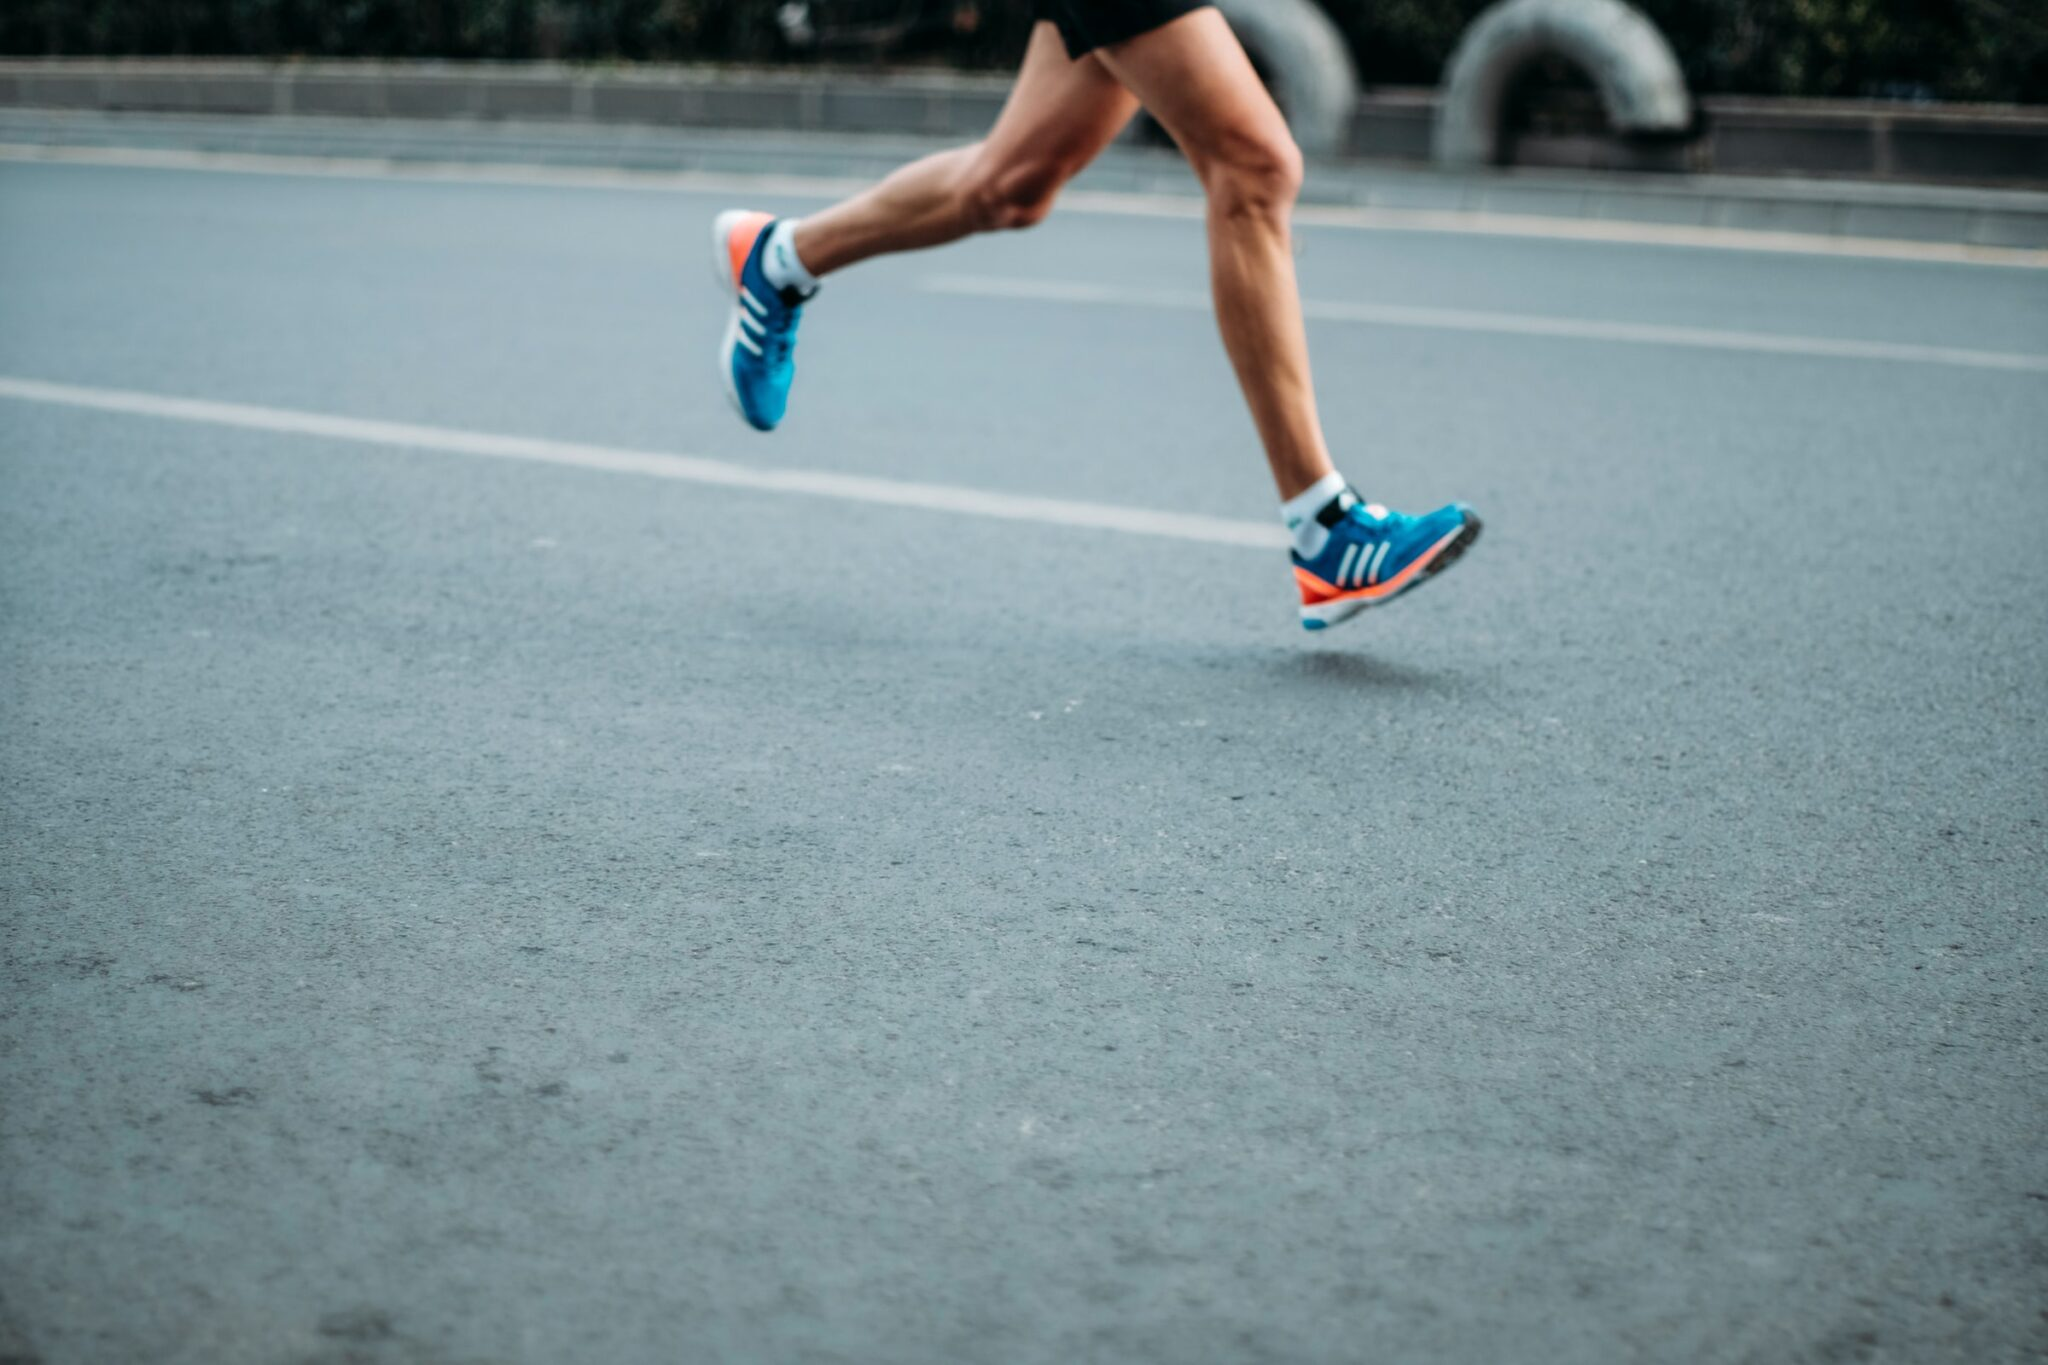 What Are Health Experts Saying About The Benefits Of Running In The Morning